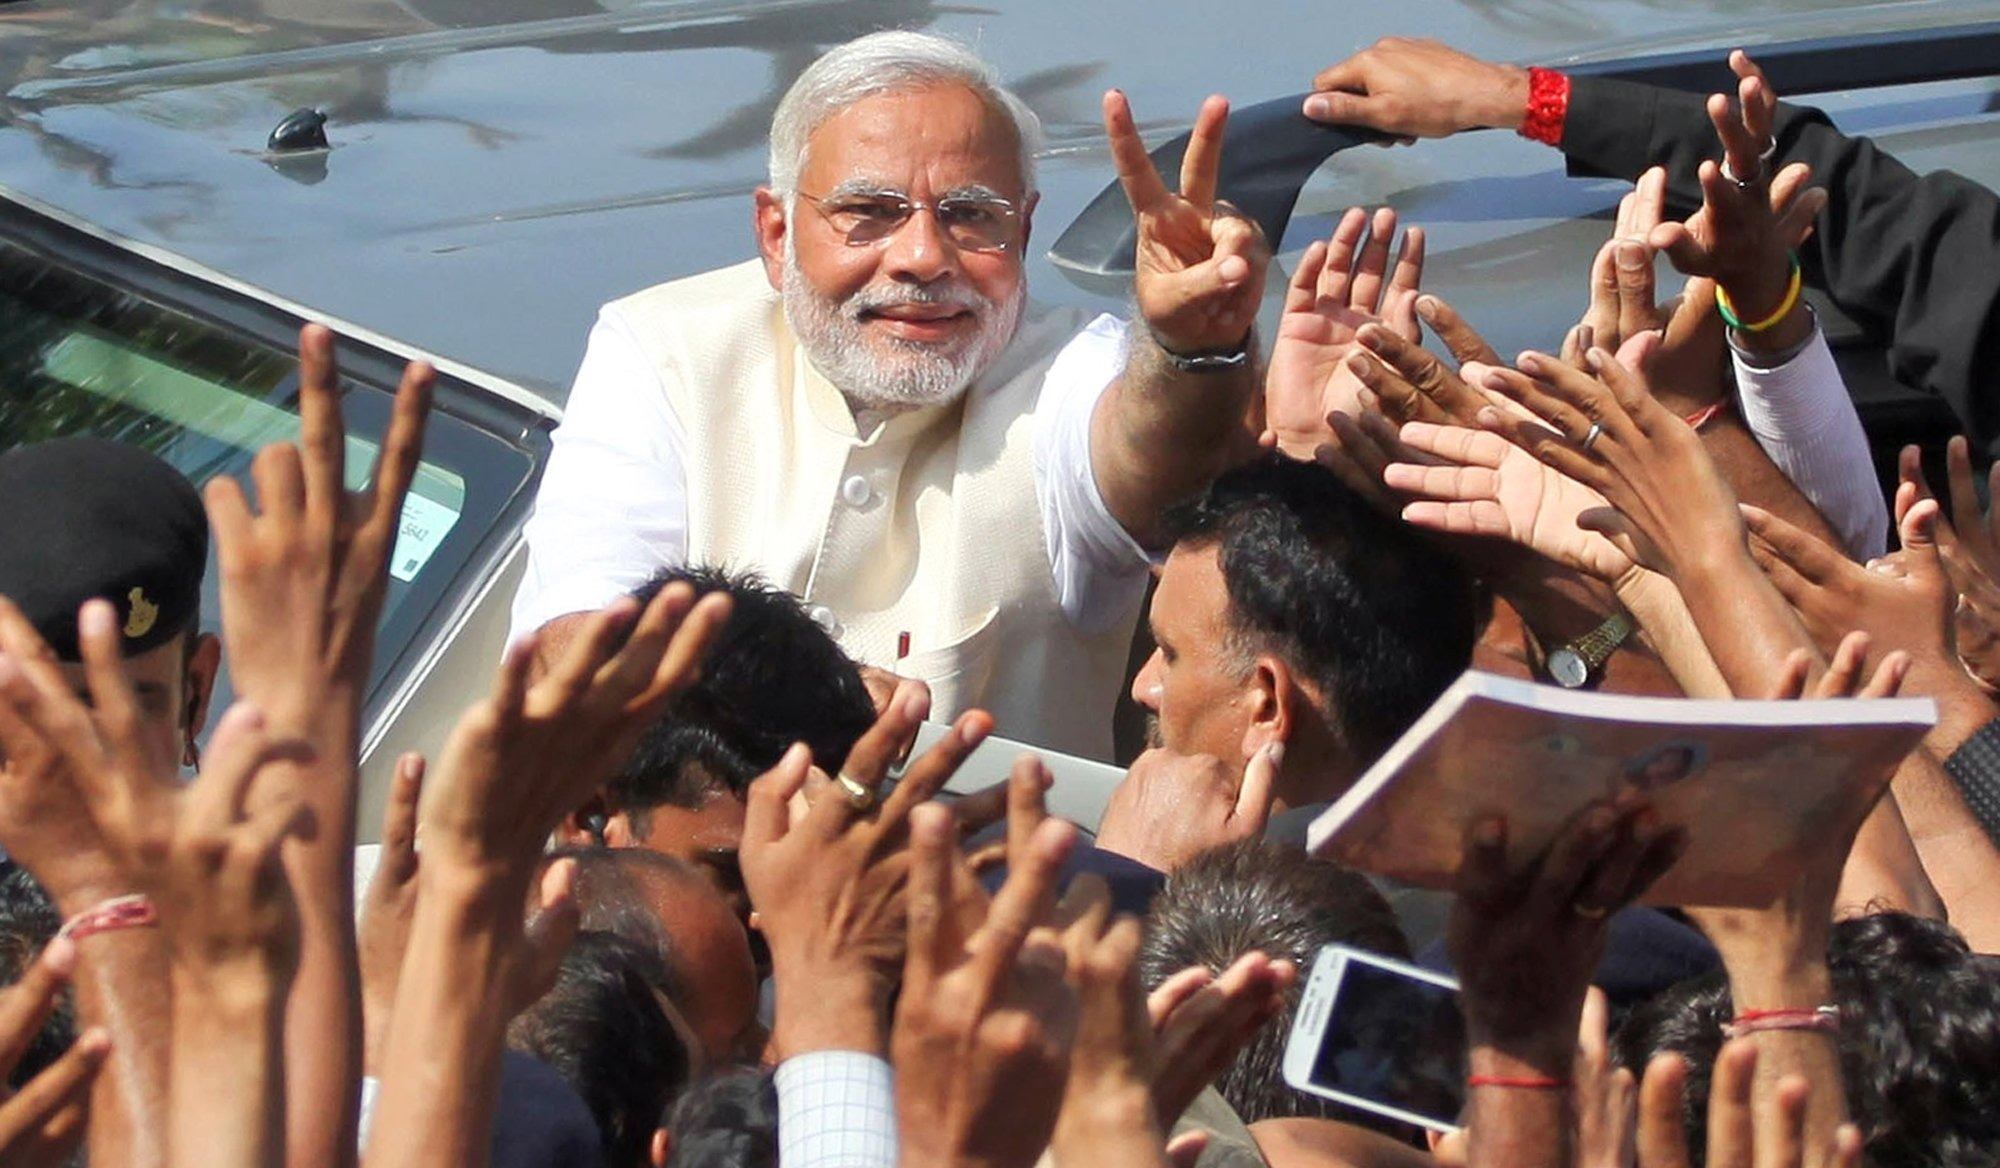 India's main opposition Bharatiya Janata Party's prime-ministerial candidate, Narendra Modi, displays the victory symbol to supporters after casting his vote in Ahmedabad, India, on  April 30, 2014